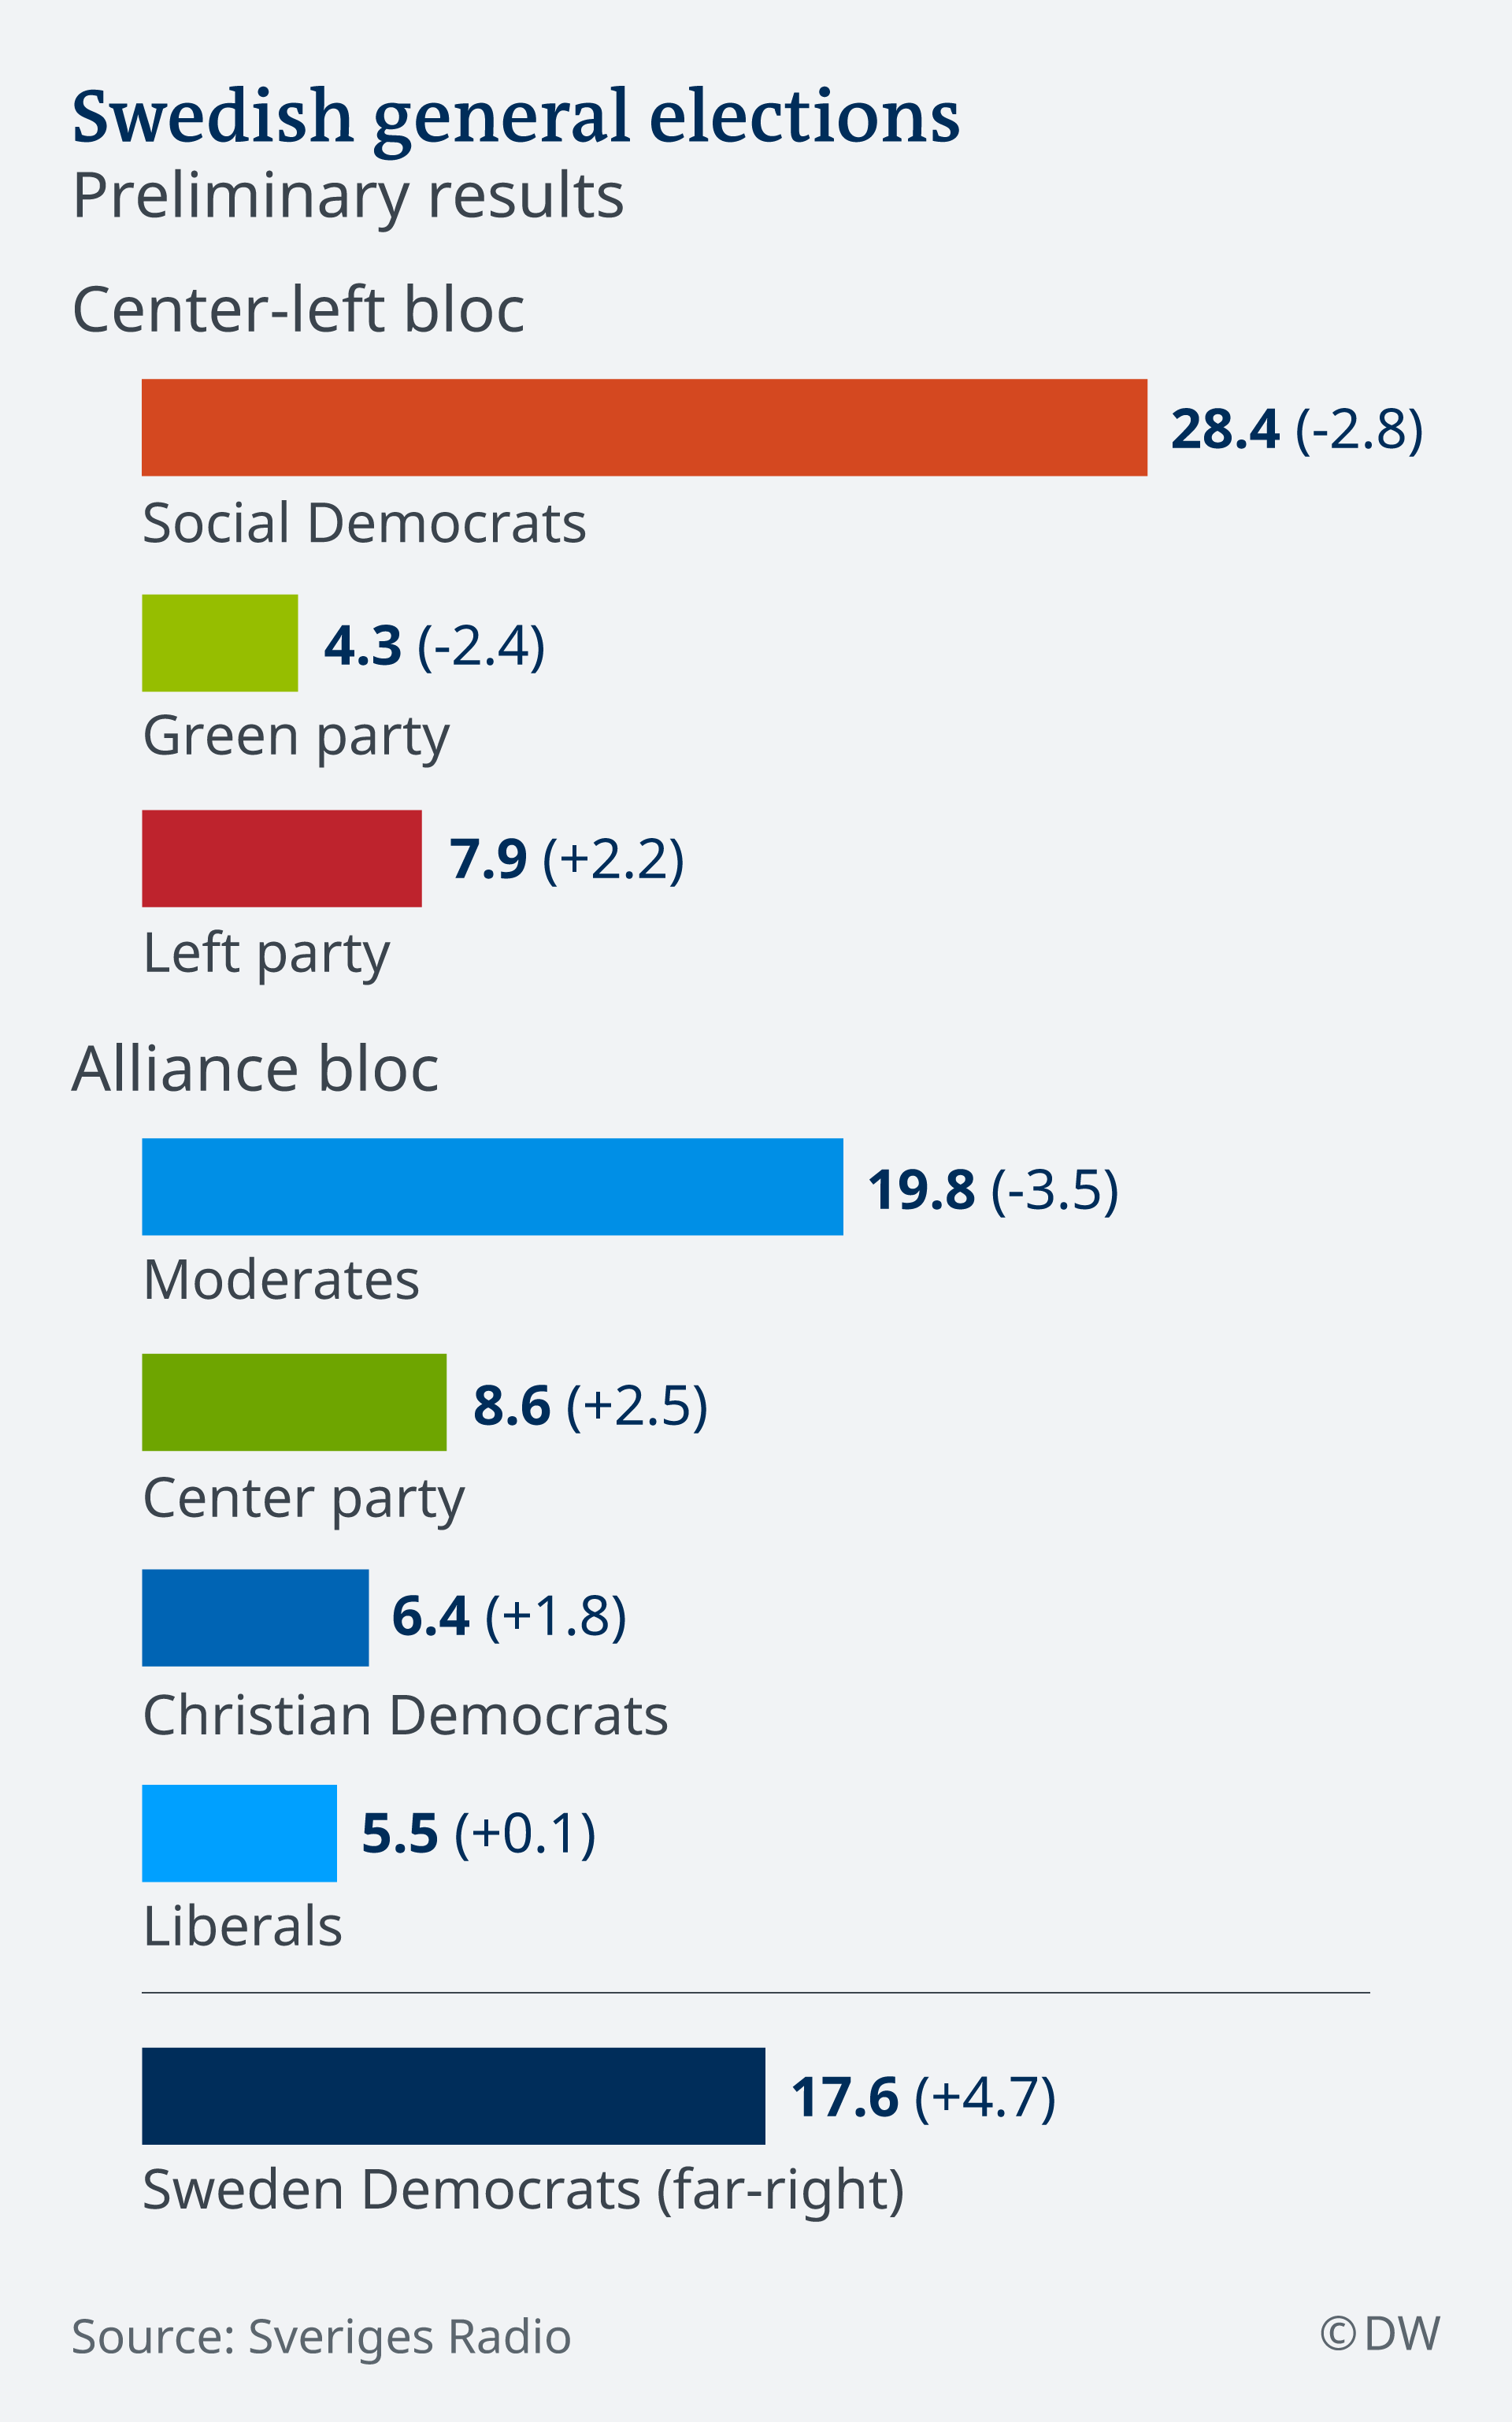 Infographic showing the preliminary election results